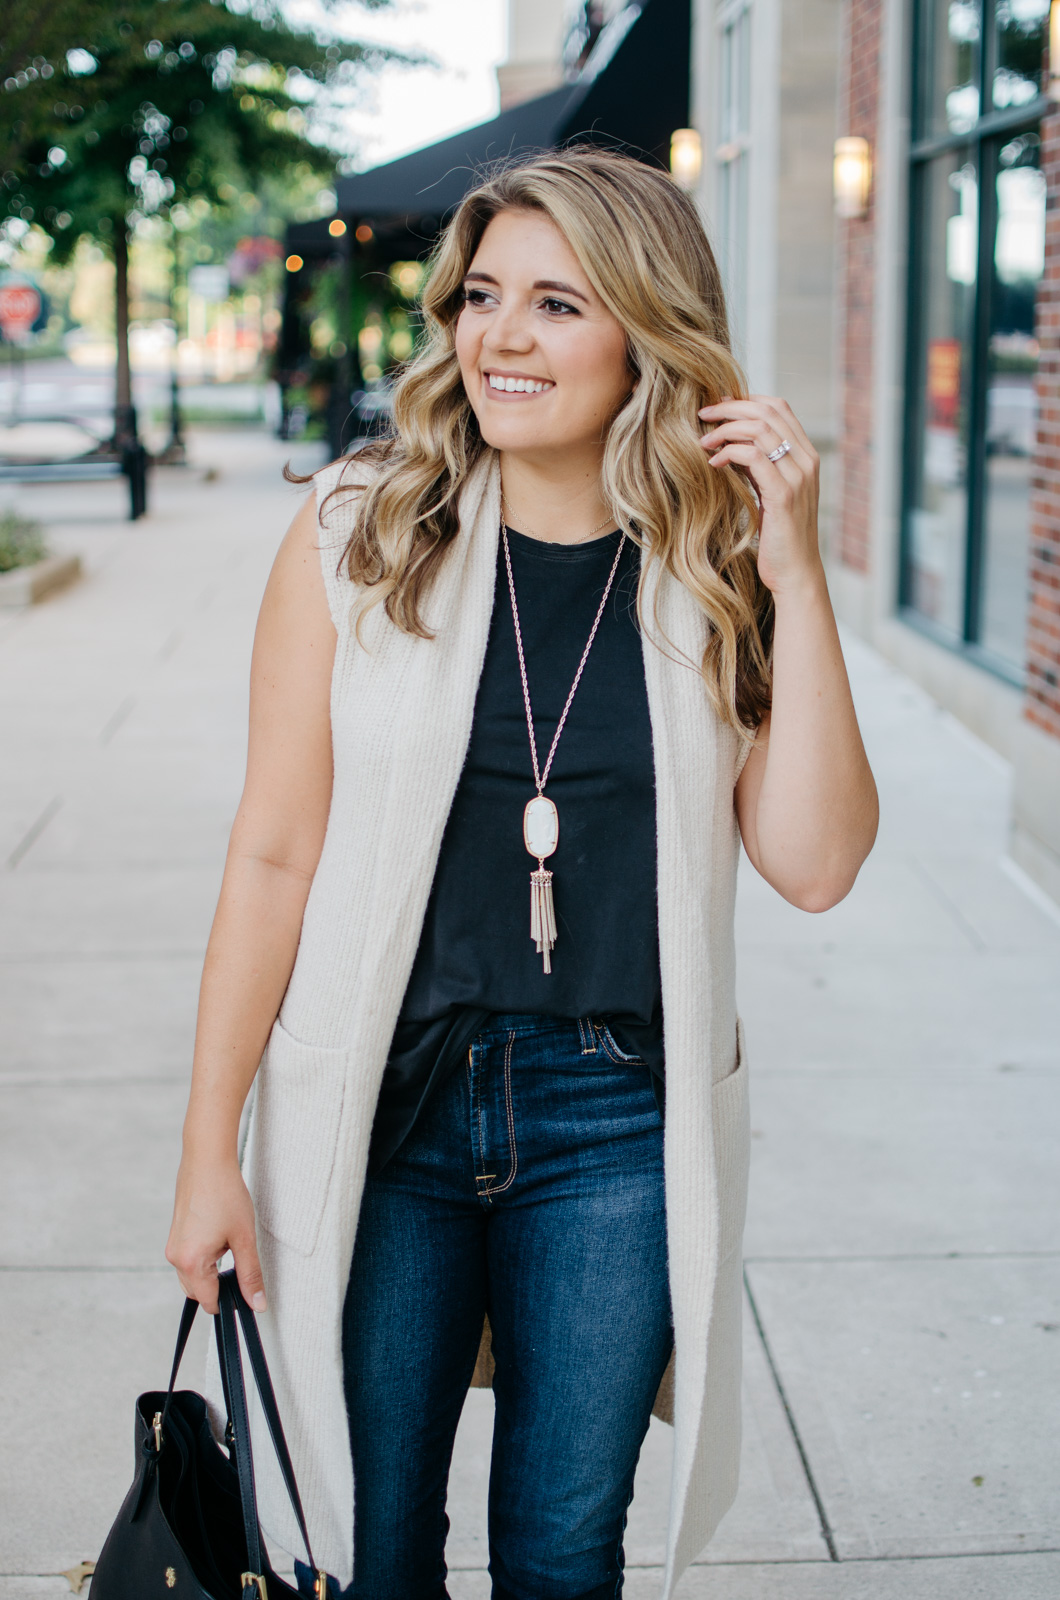 fall transition outfit ideas - long sleeveless sweater | Want to know how to wear a sleeveless sweater? I'm sharing two outfit ideas in today's post! bylaurenm.com